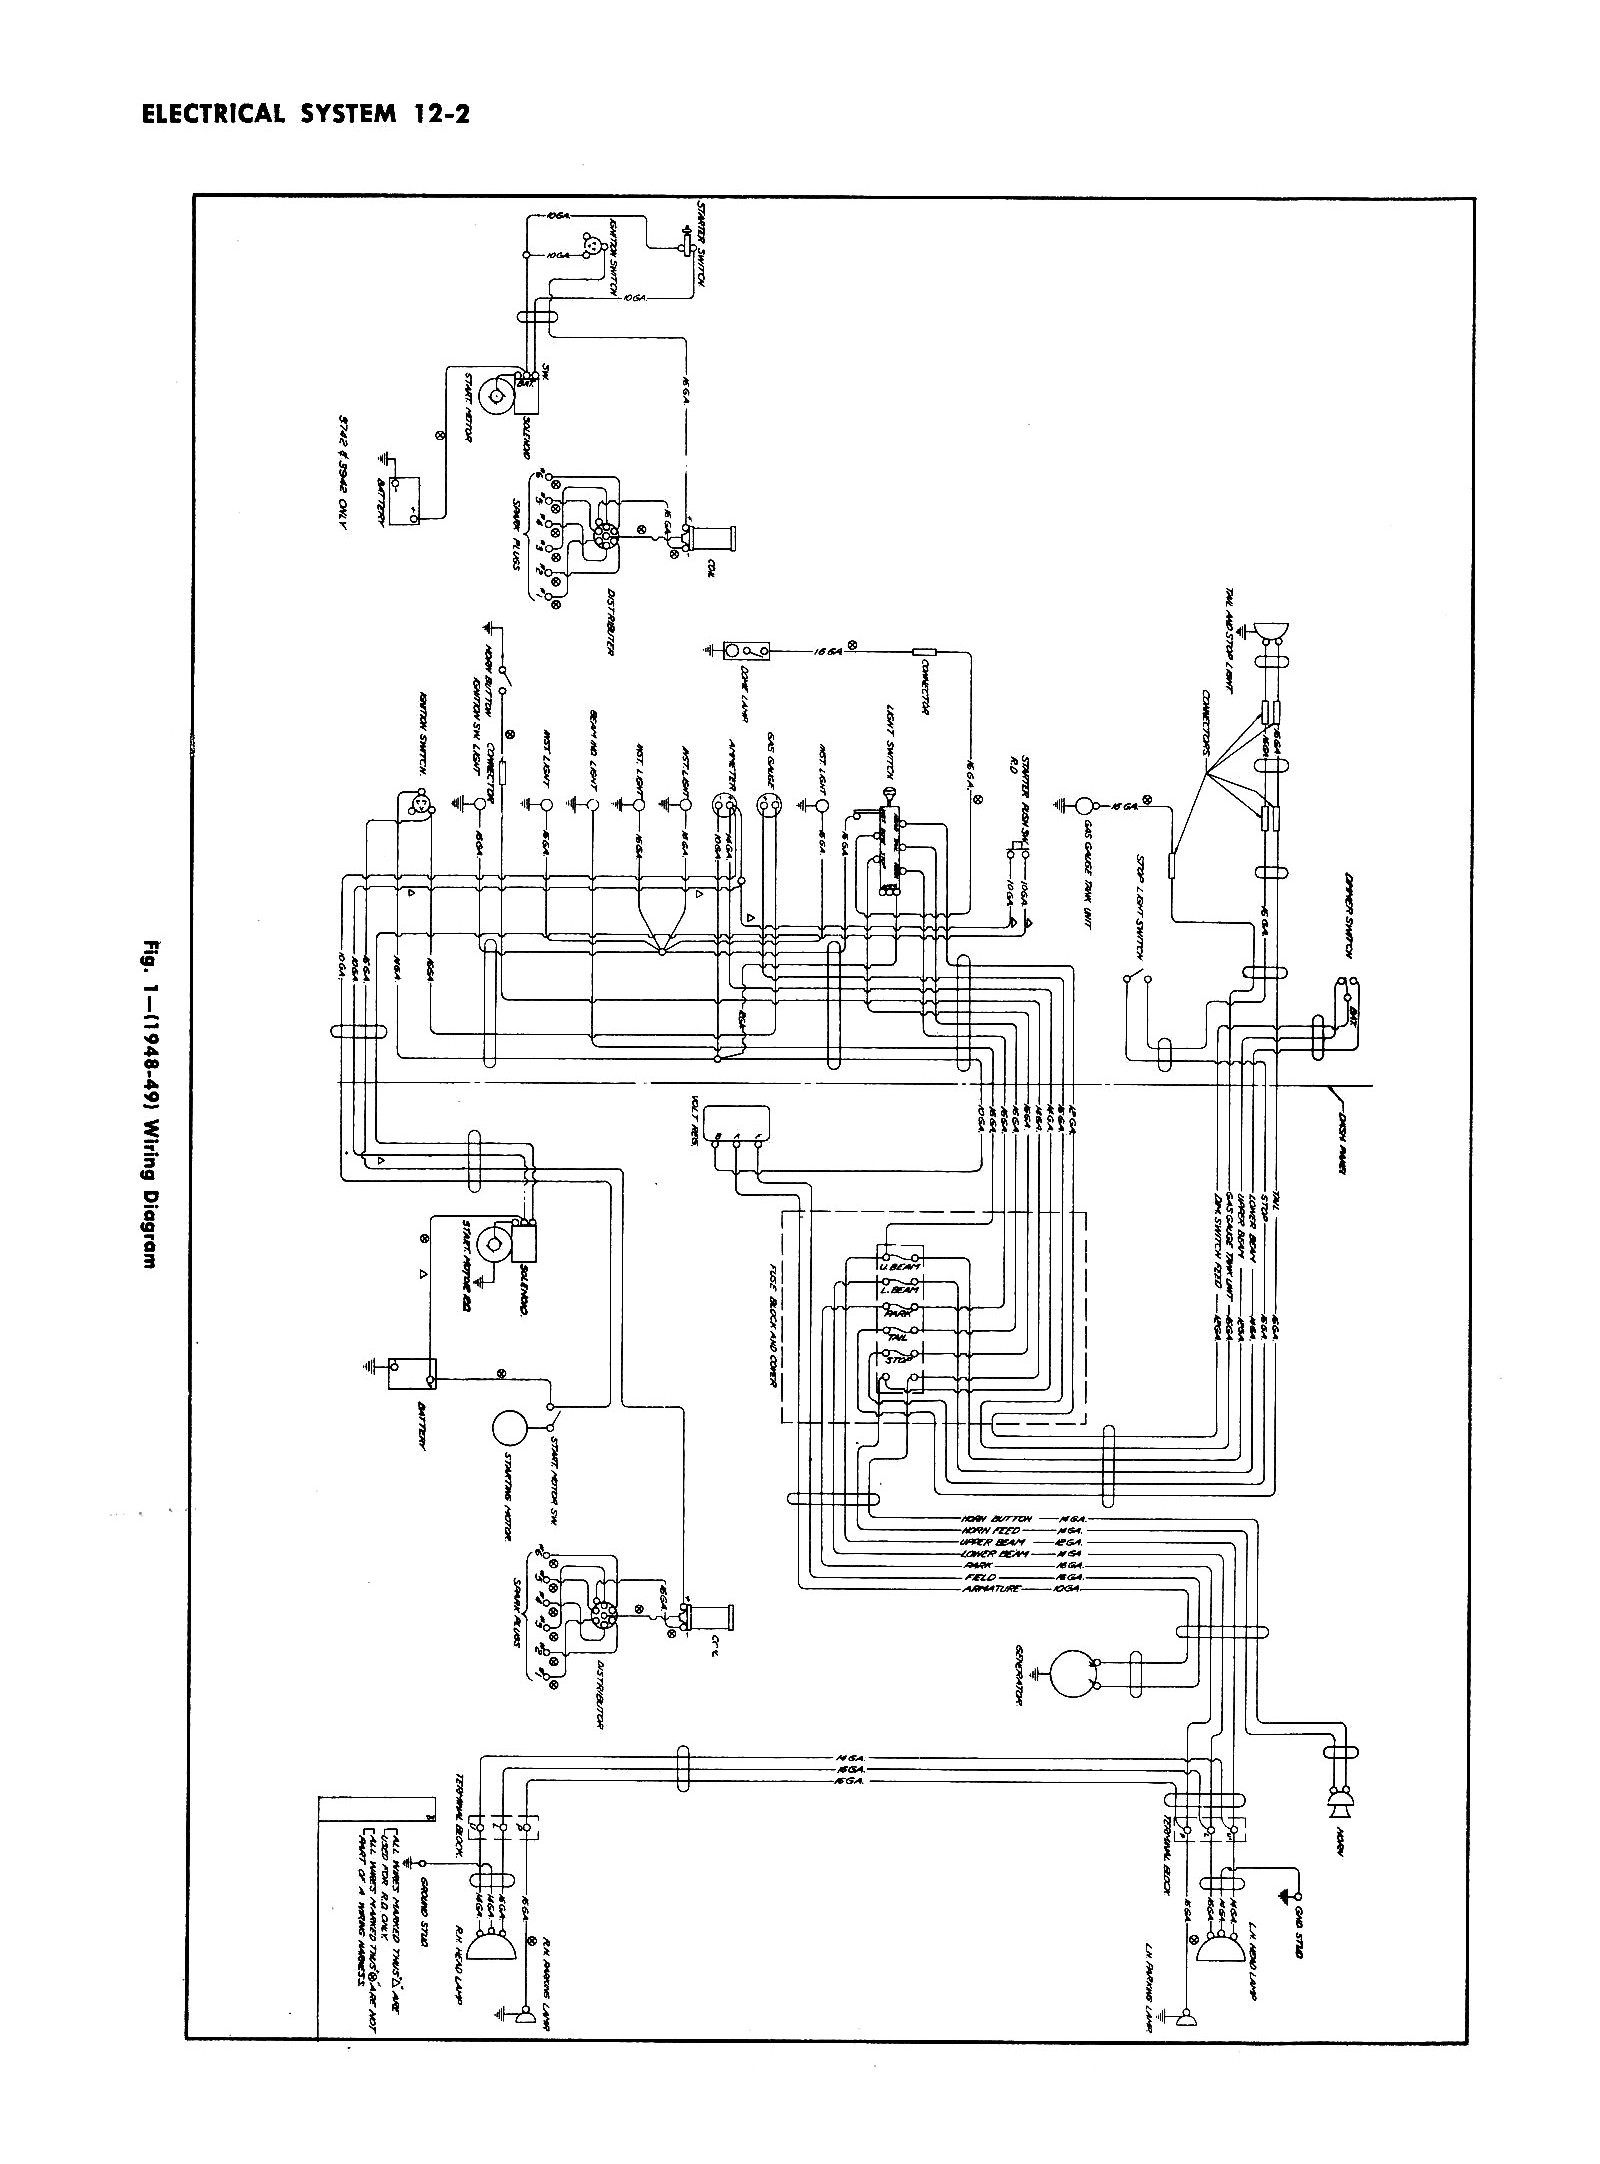 48car chevy wiring diagrams 1996 chevy truck wiring diagram at nearapp.co